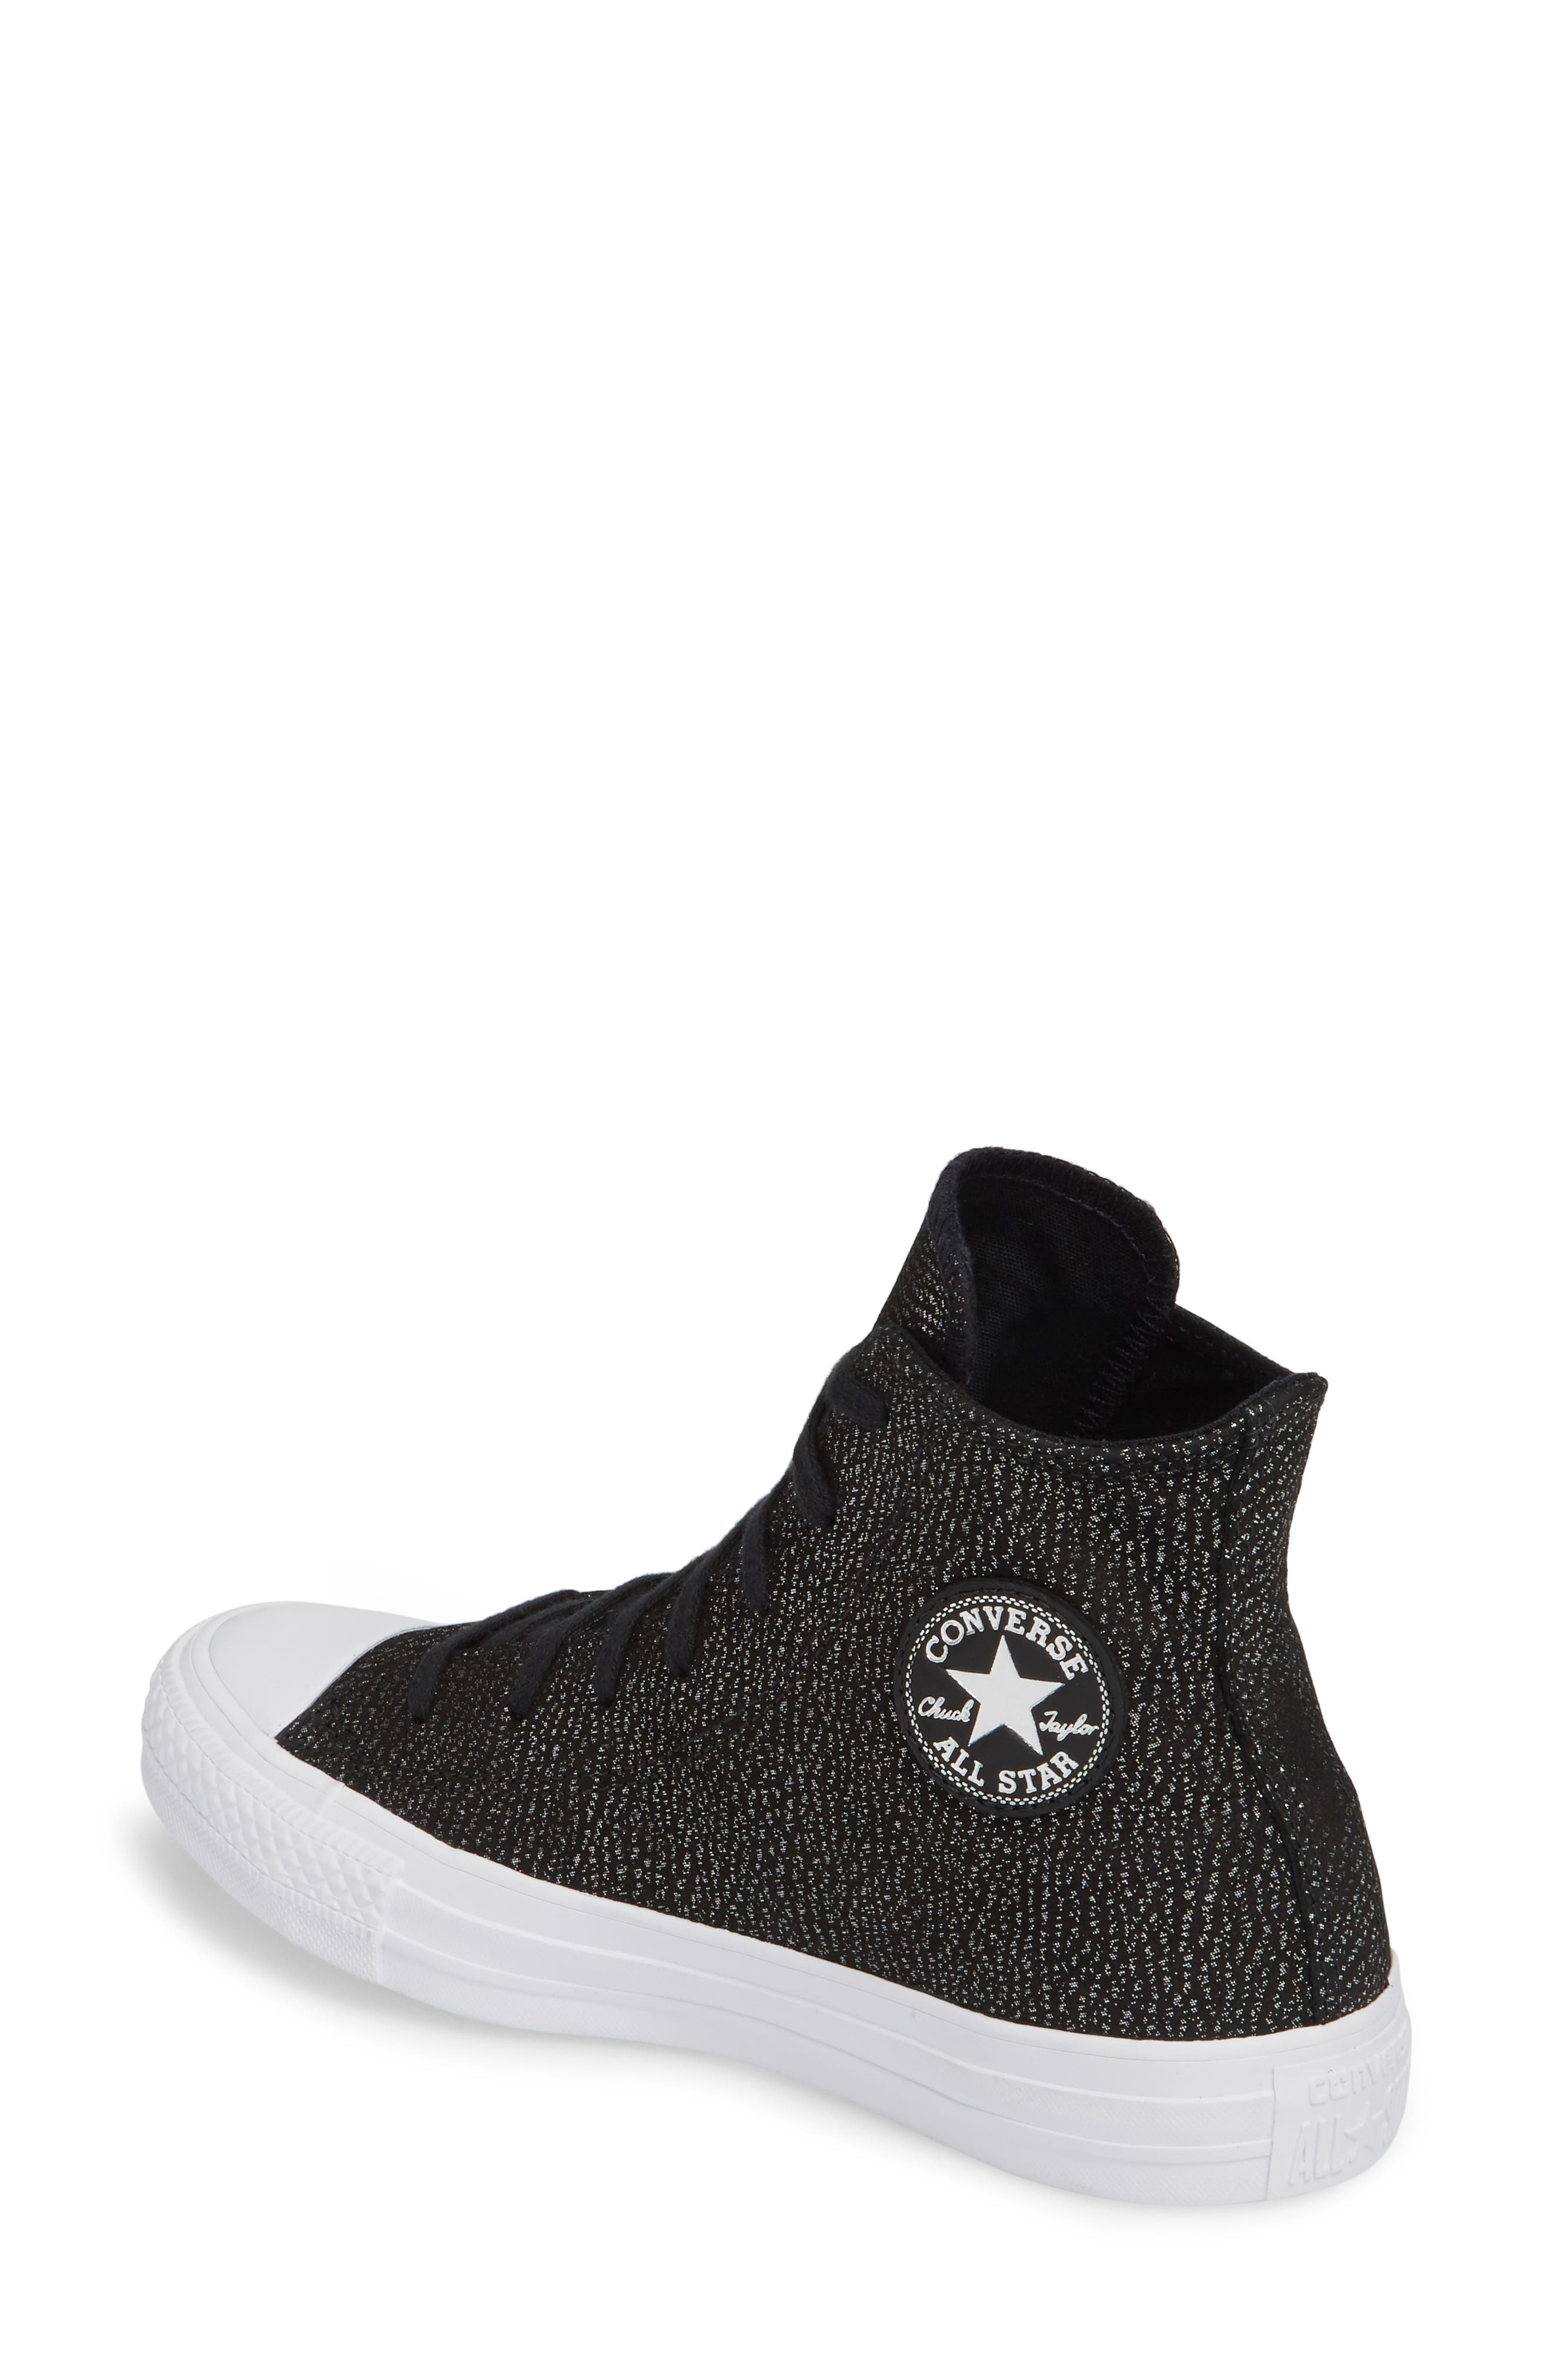 Chuck Taylor<sup>®</sup> All Star<sup>®</sup> Tipped Metallic High Top Sneaker,                             Alternate thumbnail 2, color,                             Black